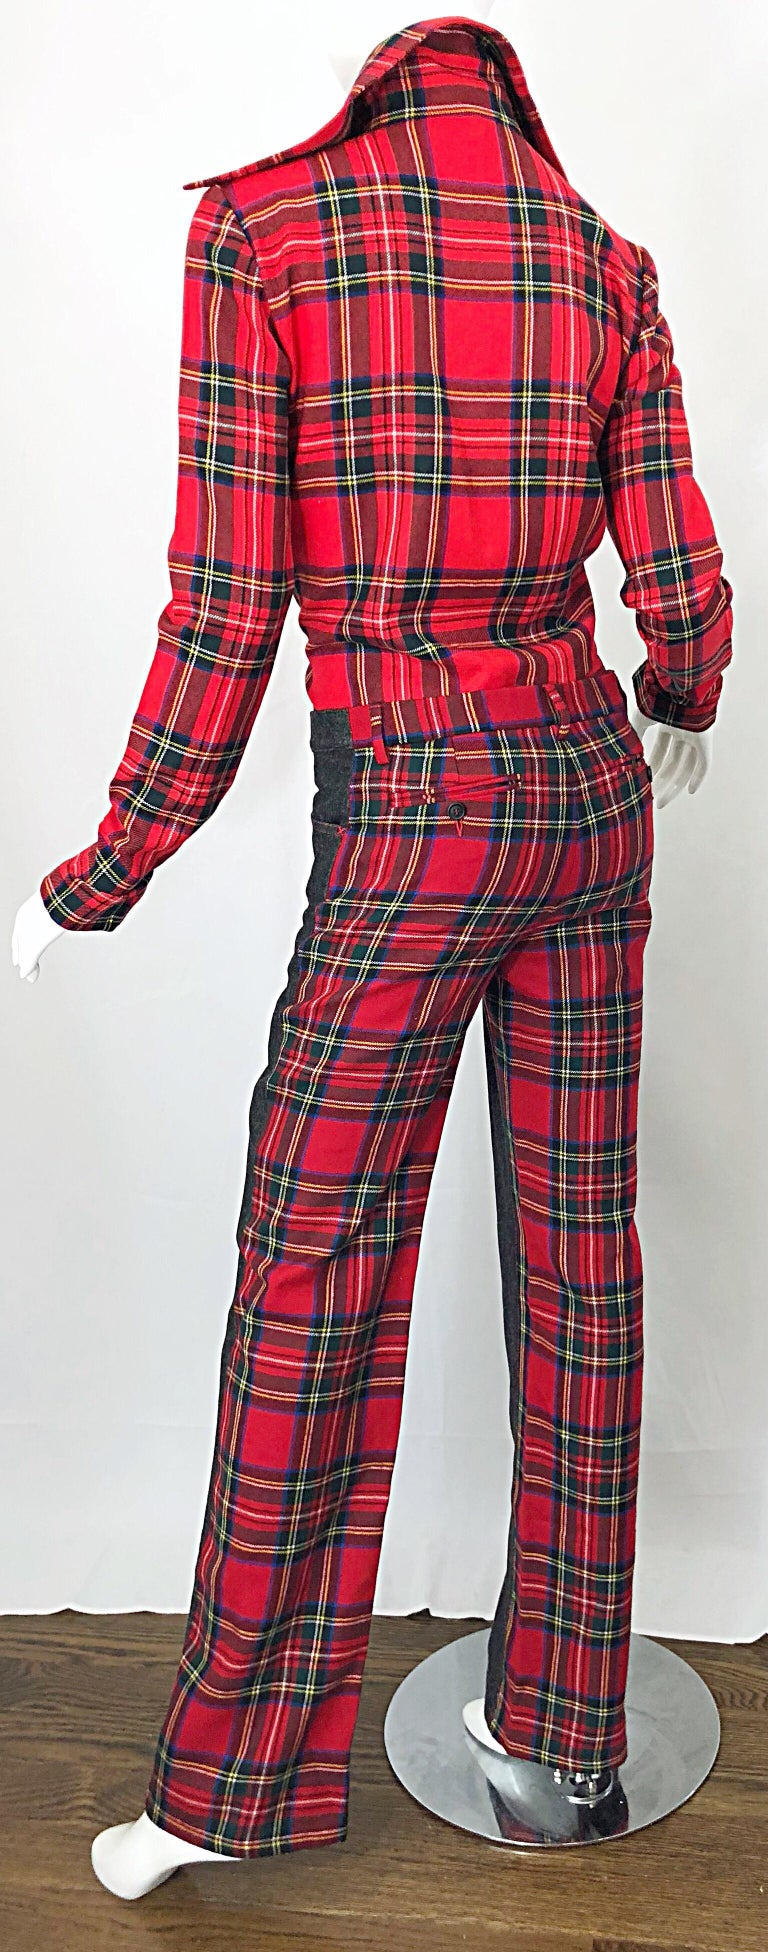 Rare 1990s Dolce & Gabbana Red Tartan Plaid Wool + Denim Flared Jeans and Shirt For Sale 7